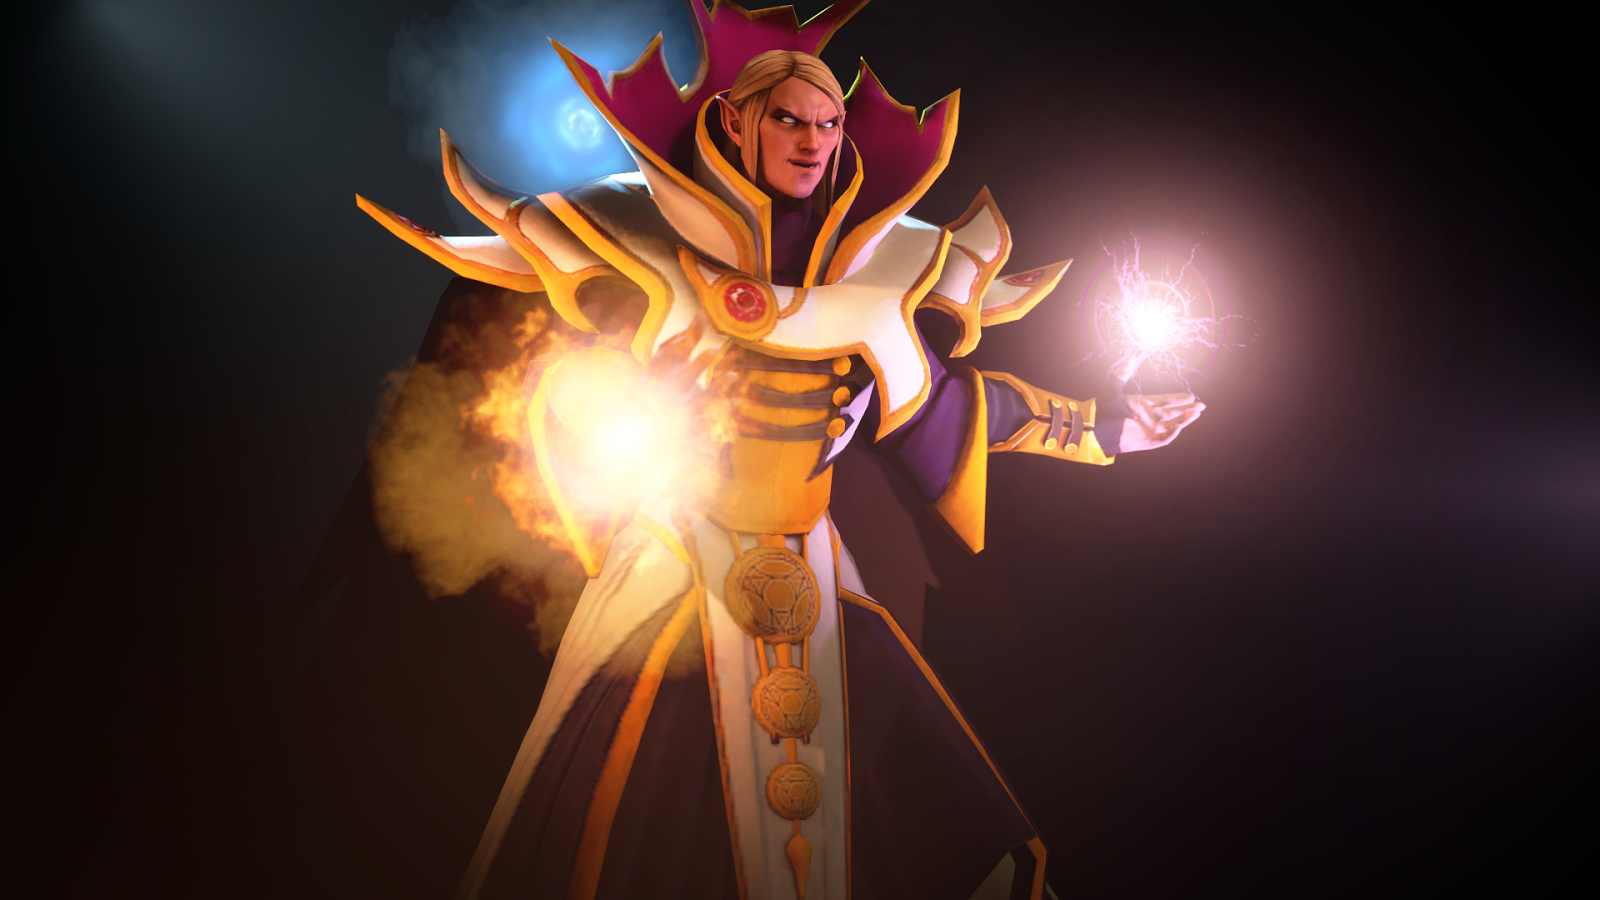 Dota 2 Wallpapers Dota 2 Wallpaper   Invoker by DotTheWorld 1920x1080 1600x900